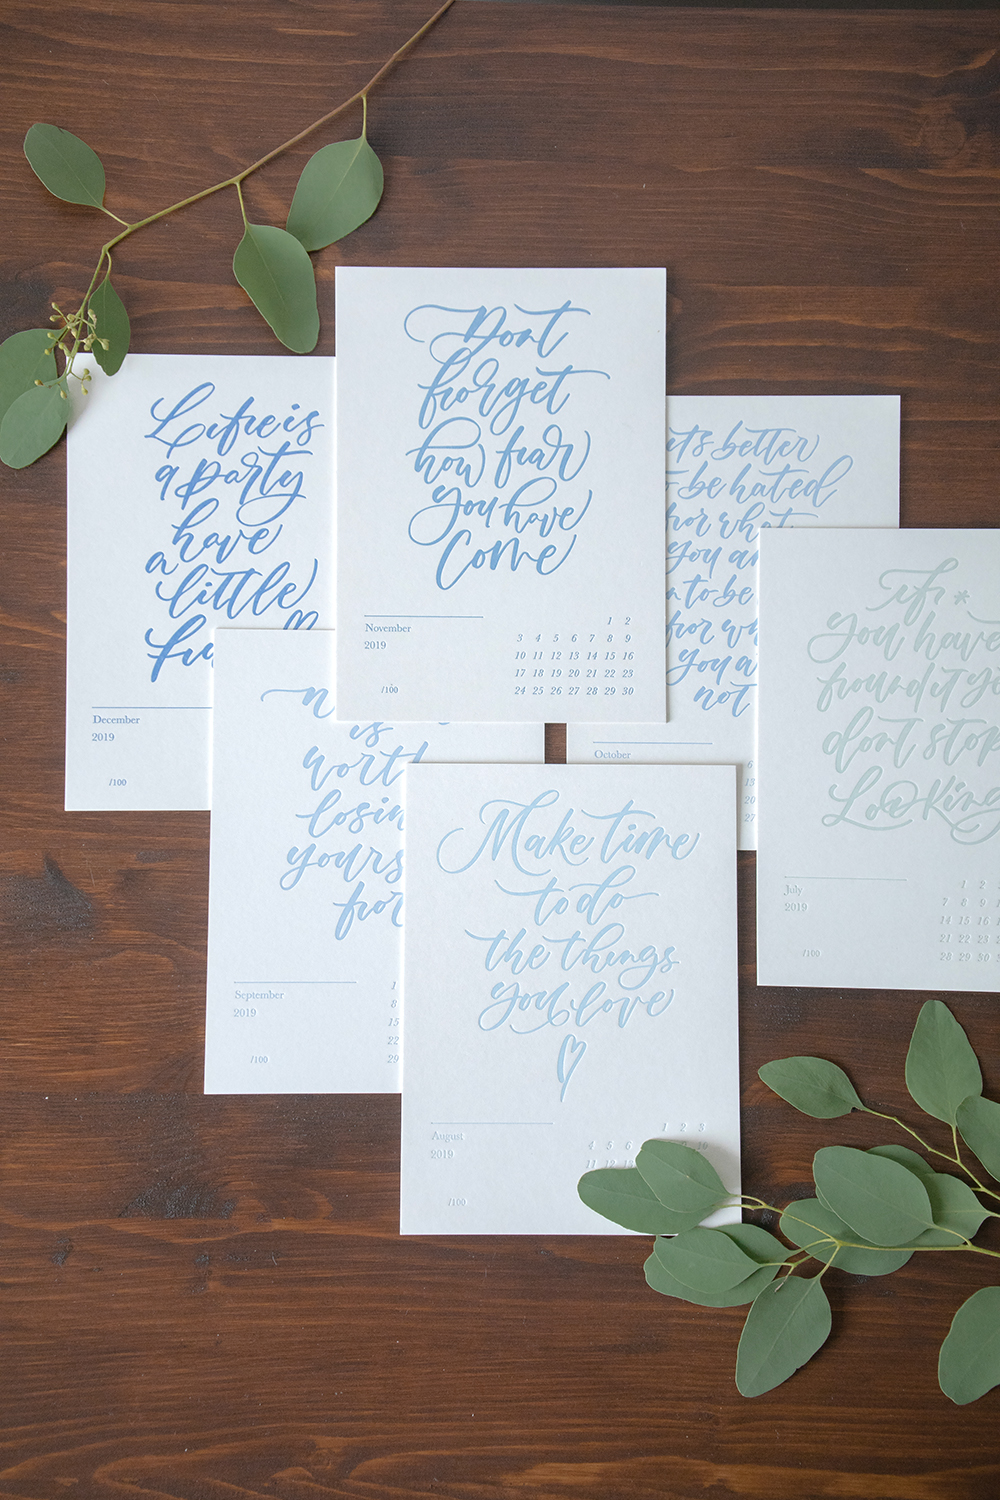 July to December speaks to you in cool color tones, reminding you to slow down and appreciate yourself.